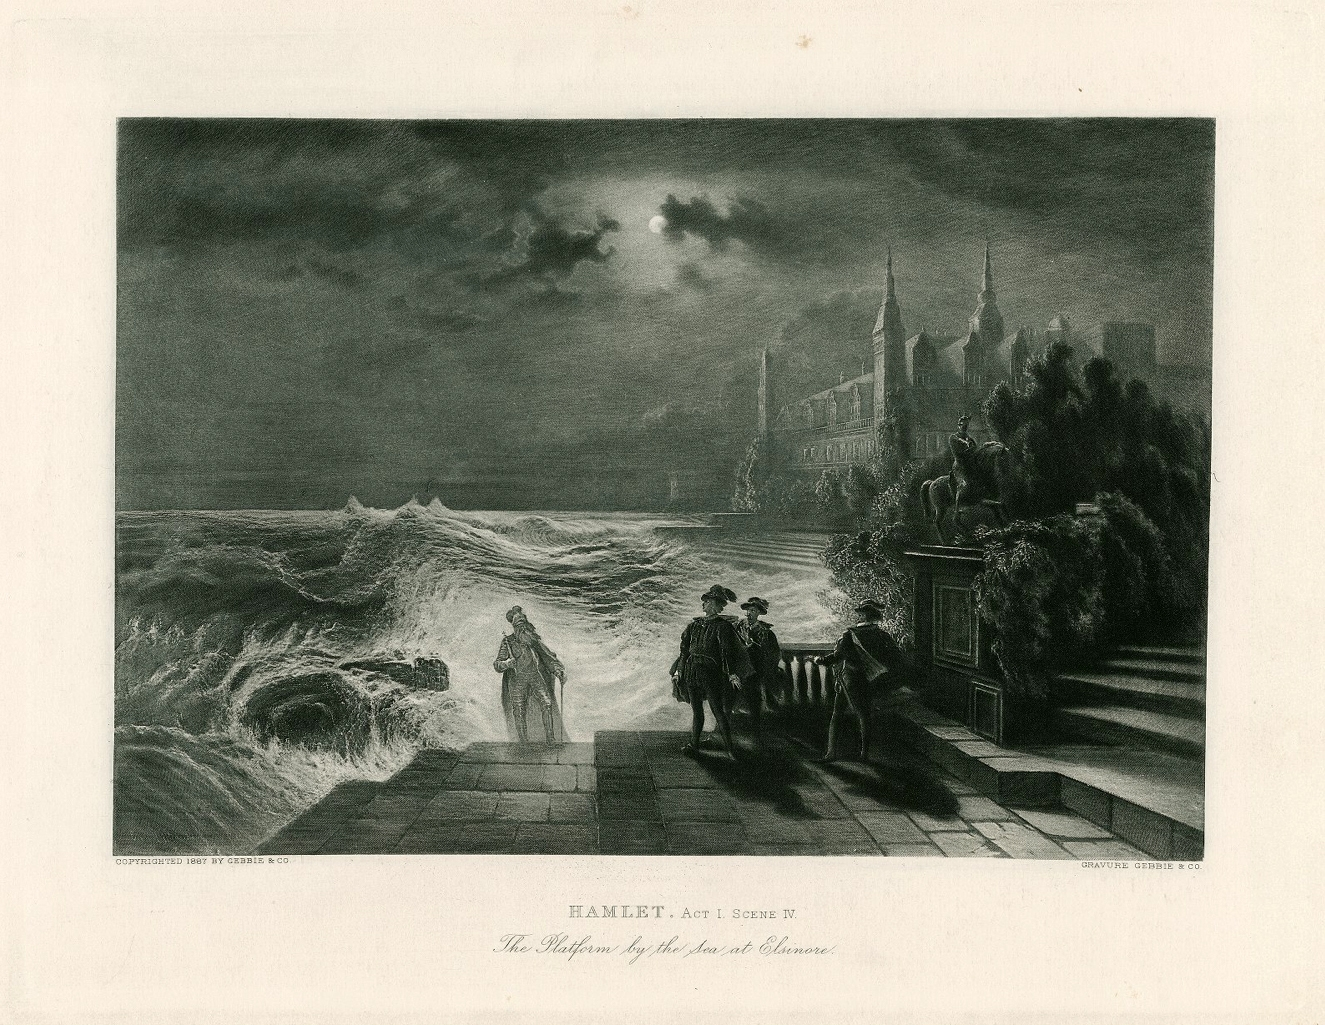 Hamlet, act I, scene iv, the platform by the sea at Elsinore.Gebbie & Co., London.1887.